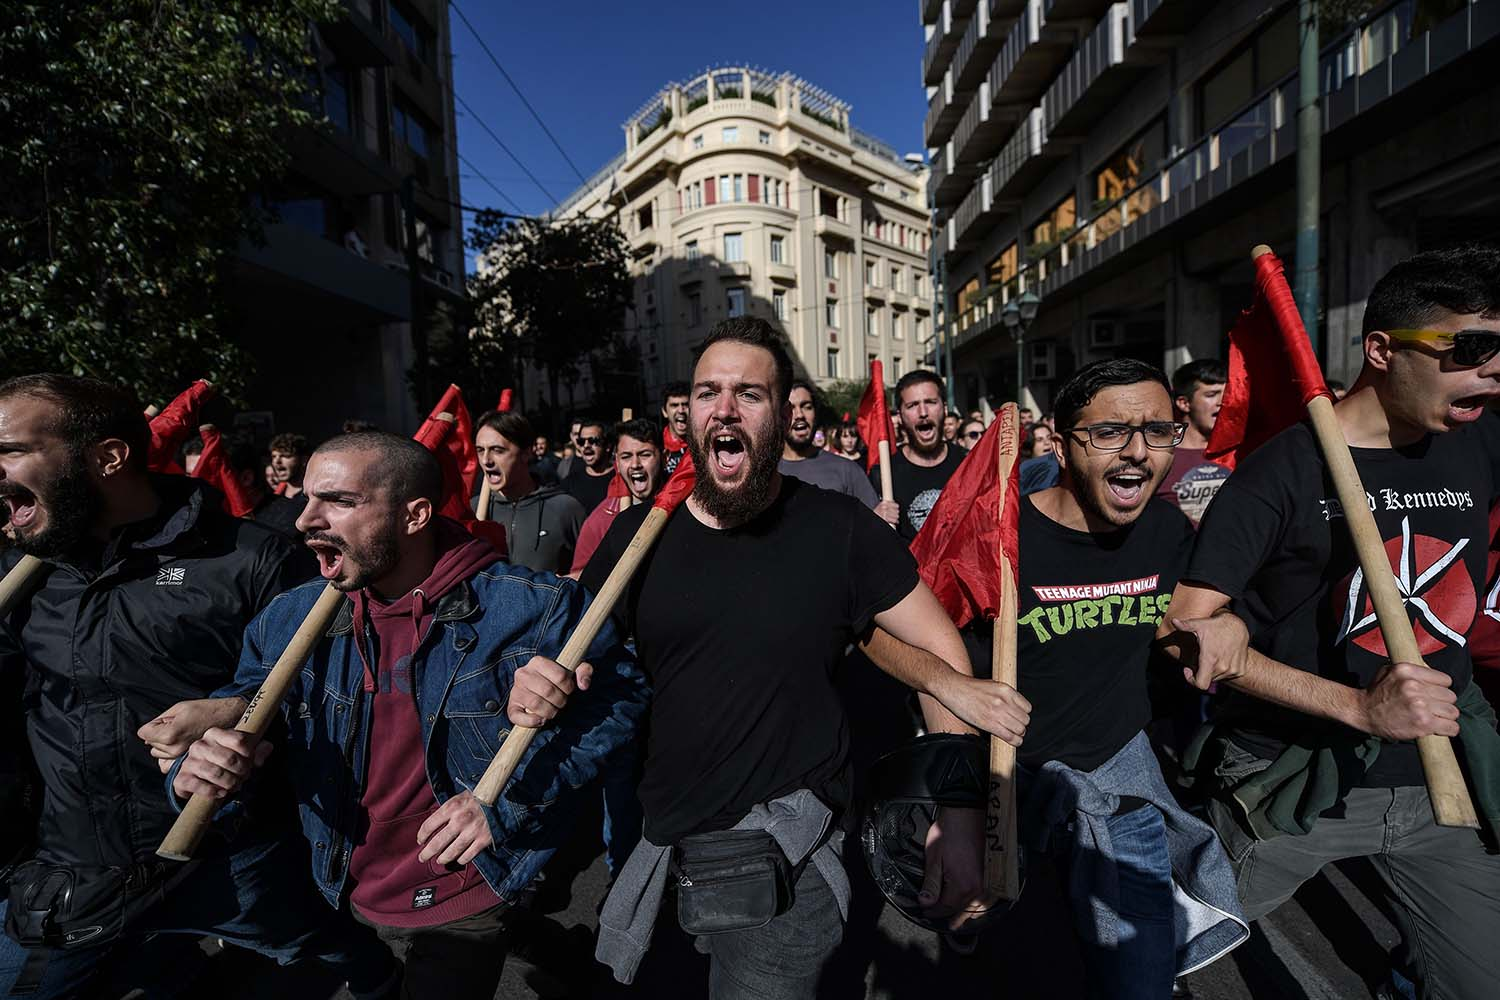 Students shout slogans as they demonstrate against recent educational reforms including the University Asylum law, in central Athens, Greece, on Nov. 14. ARIS MESSINIS/AFP via Getty Images